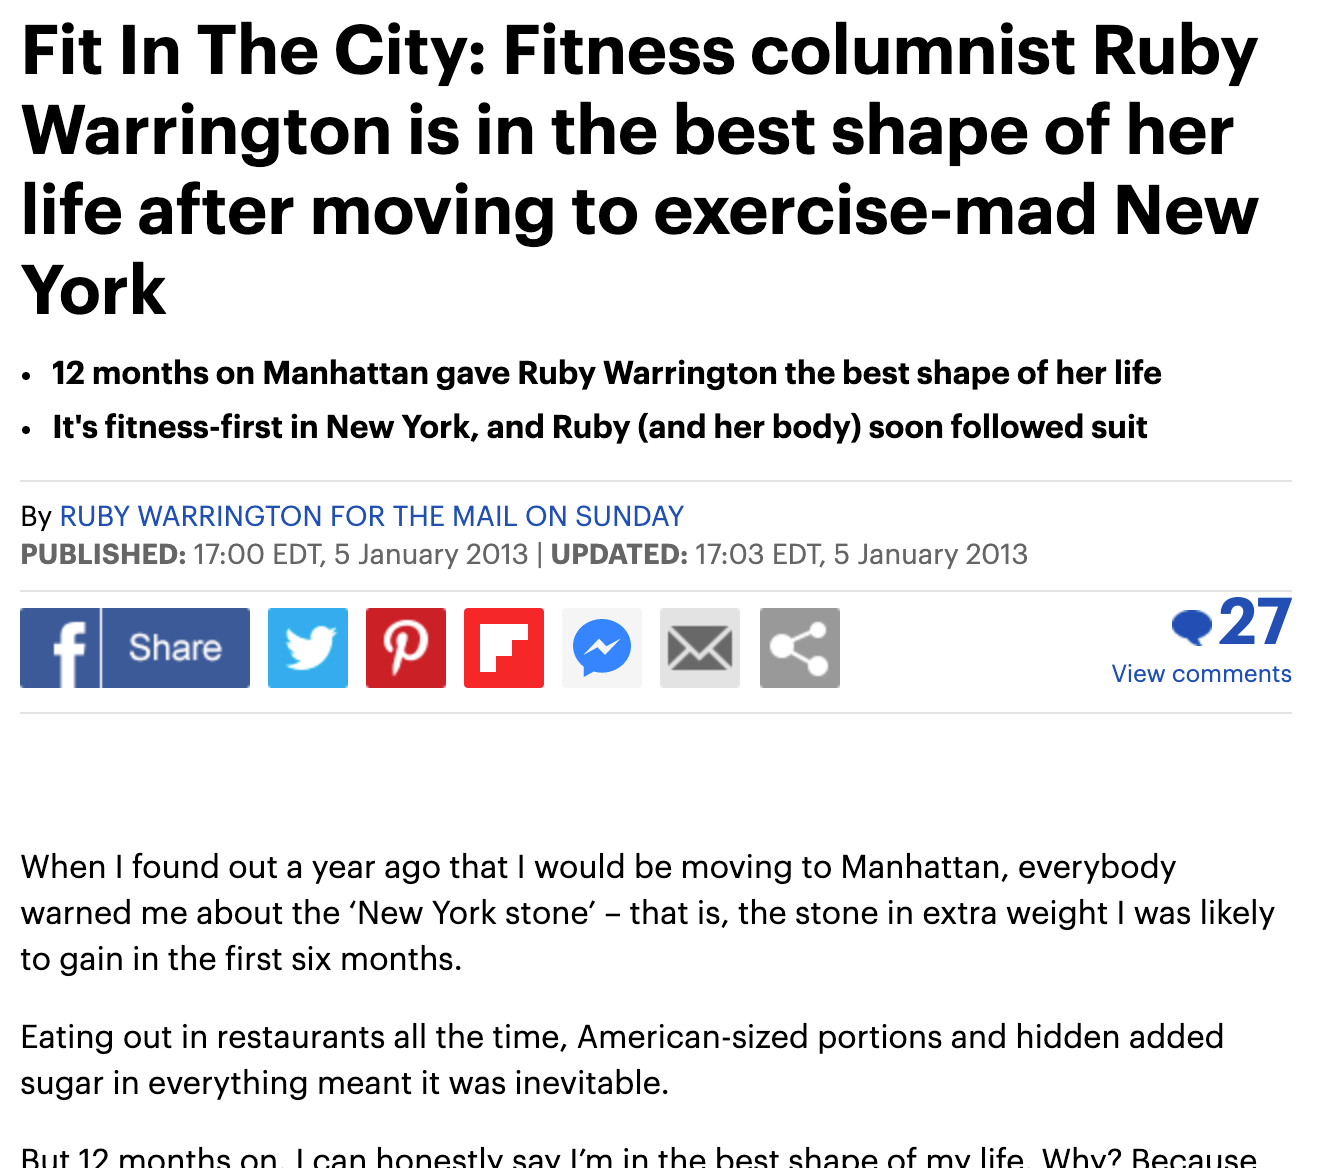 THE DAILY MAIL UK, JANUARY 5, 2013: Fit In The City: Fitness columnist Ruby Warrington is in the best shape of her life after moving to exercise-mad New York